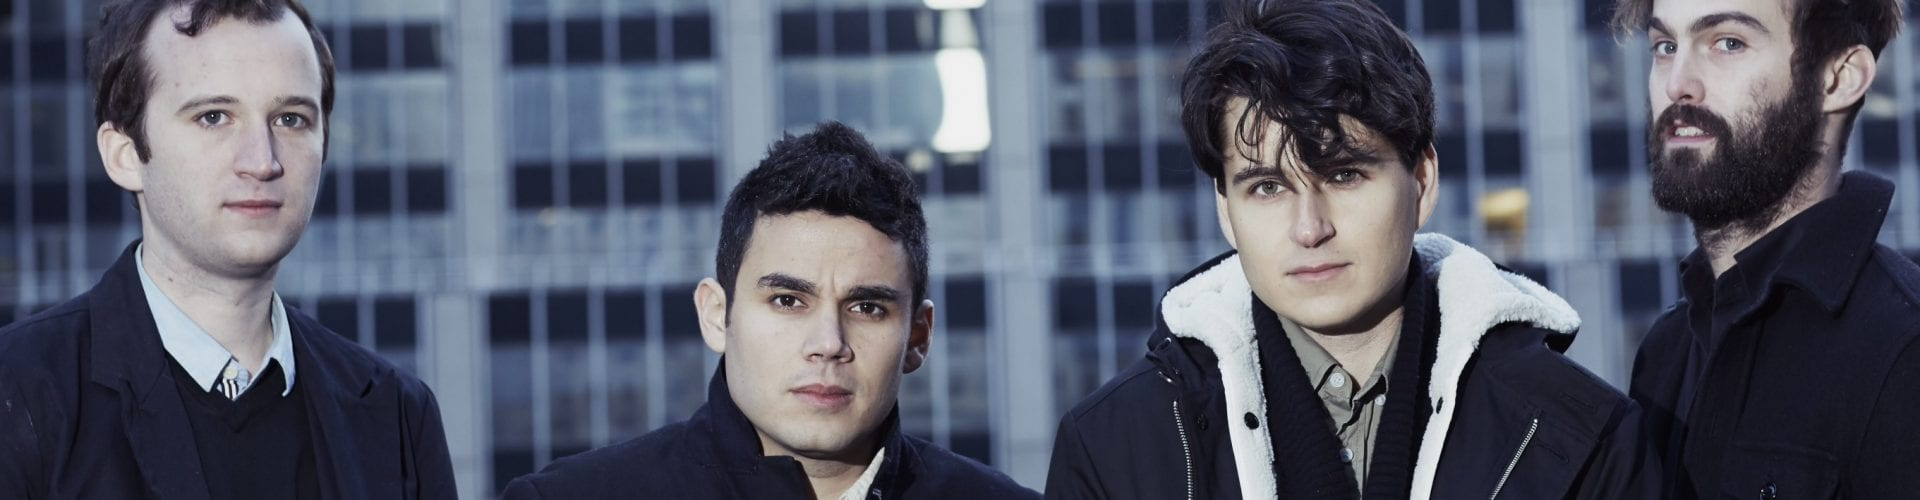 Vampire Weekend Return After Six Years With New Album, Tour